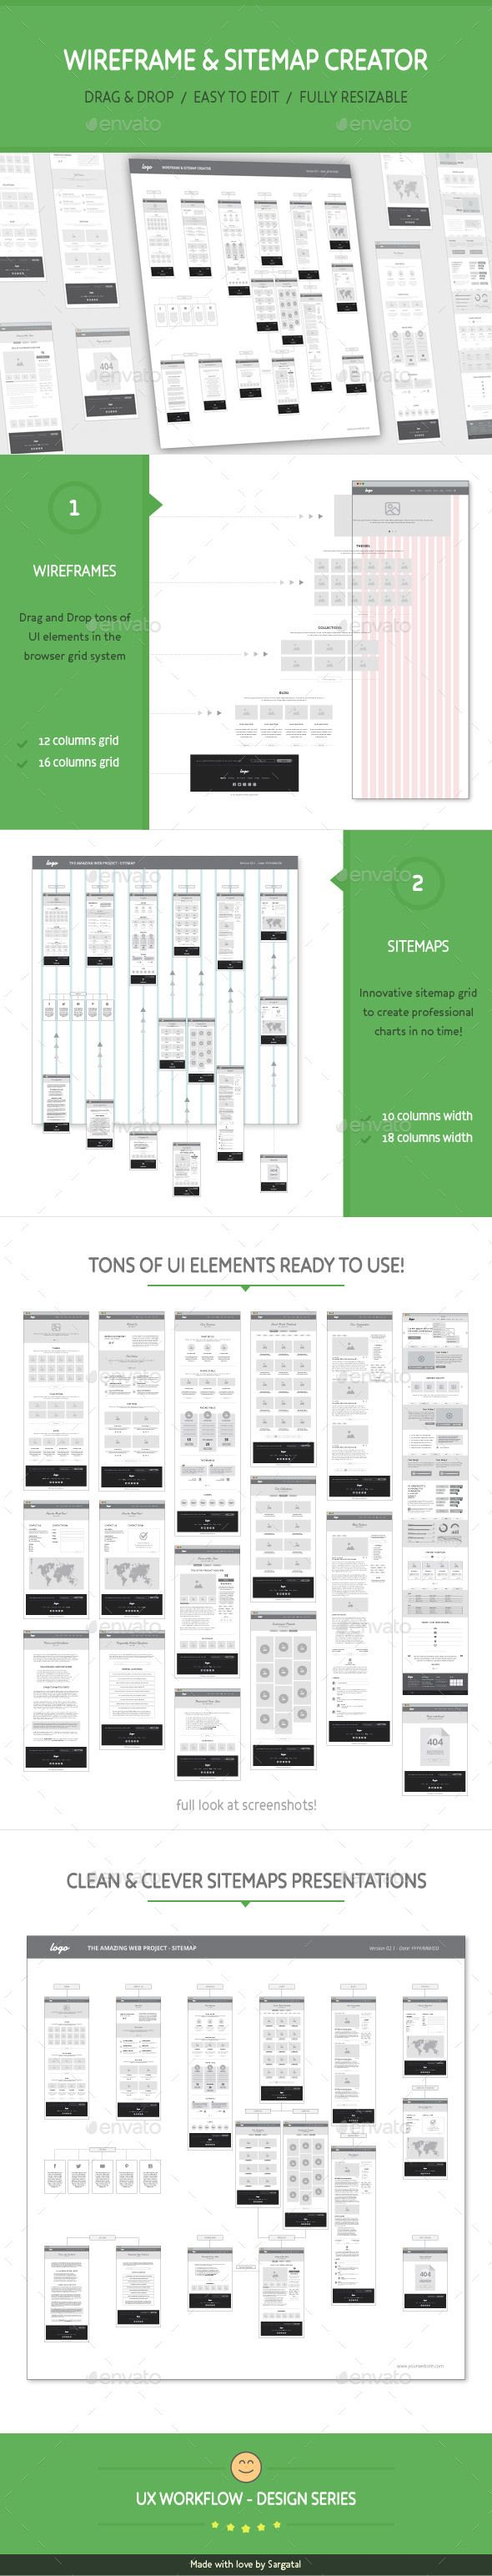 UX Workflow - Wireframe and Sitemap Creator (User Interfaces)